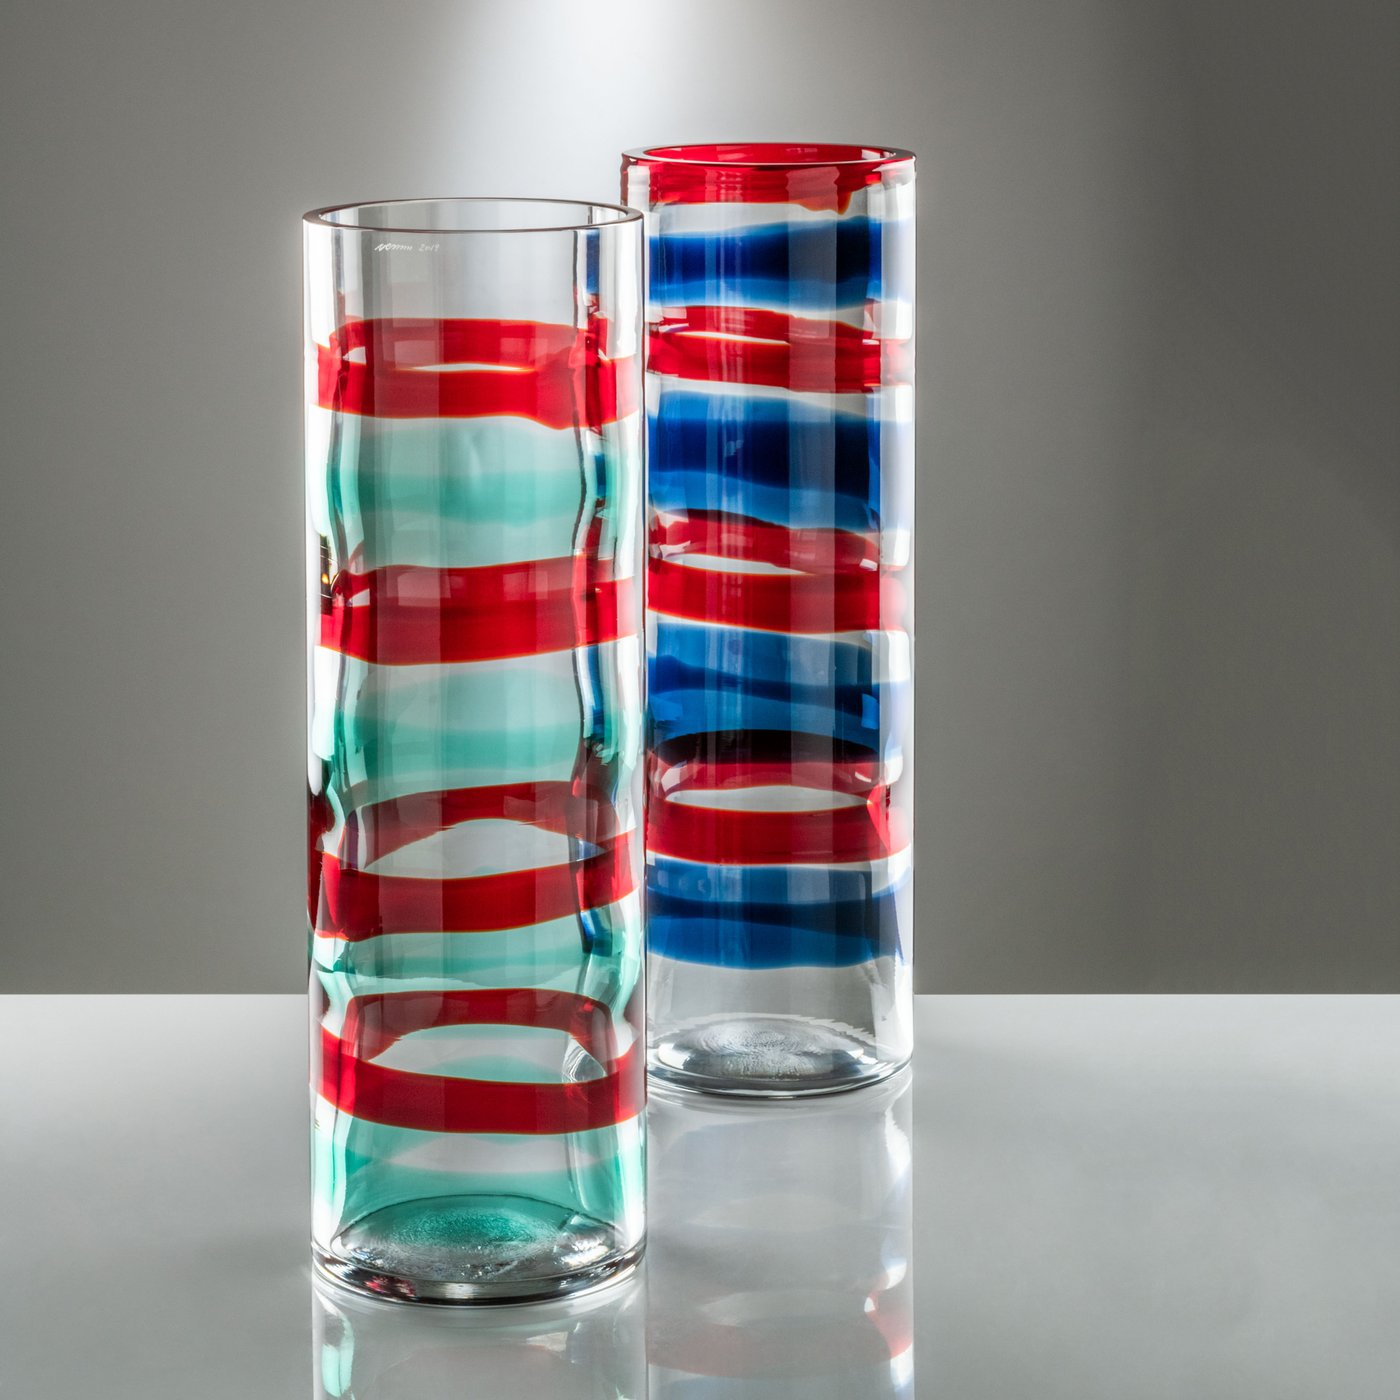 """Anelli Vase - As part of Venini's 2019 Amazing Colours collection, the Anelli vase is a piece of great importance, both in size and in the chromatic aspect. On the transparent glass, alternating rings of colour are applied before blowing, creating a unique vessel that is both playful and sophisticated. Handmade by master glassmakers on the island of Murano, Italy. Please note: dimensions and colours may vary due to the handcrafted nature of this product.  """"The master skilfully plays with sheer glass: four red rings alternating with four light blue or blue ones, running its full length. A new glass star is born in 2019: Anelli. Color is hot-applied before blowing the glass, thanks to the exclusive Fasce (bands) technique."""" 